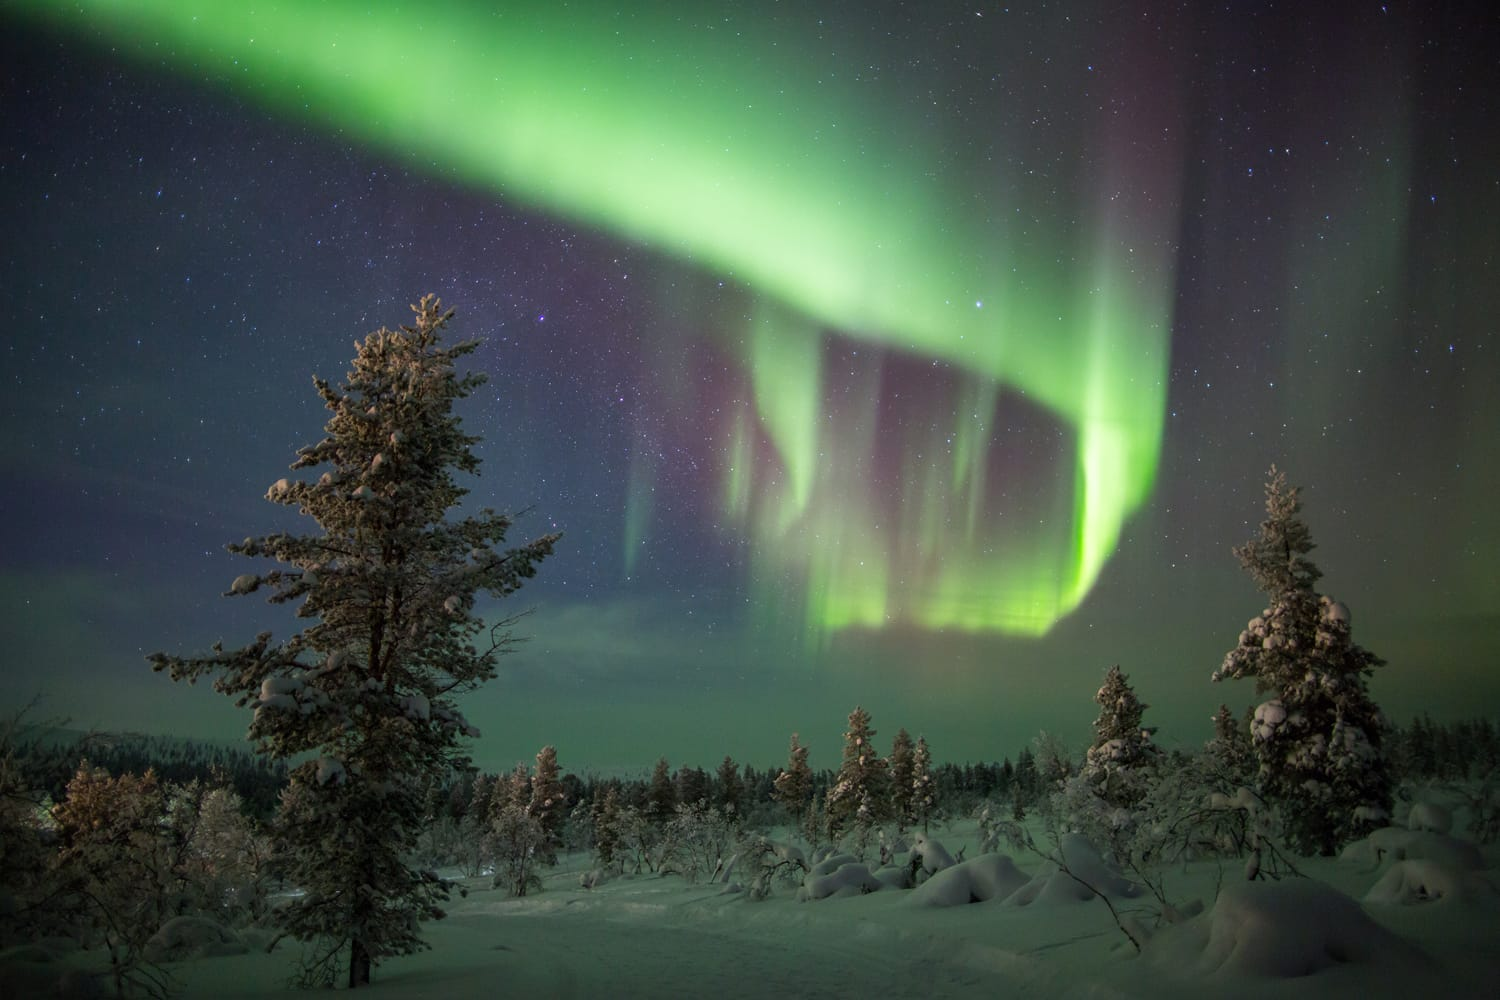 Northern lights (aurora borealis) in Lapland, Finland.